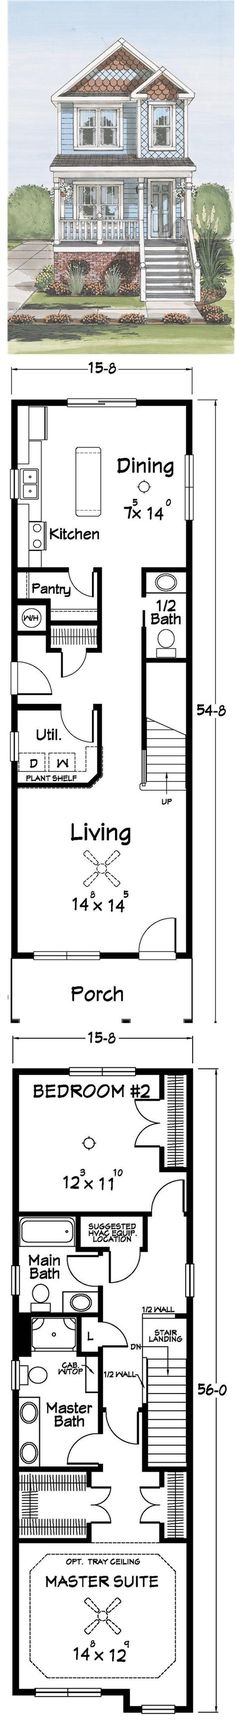 This charming, narrow lot friendly, Garden City plan provied large house square footage in a small frontage design. Stylishly appointed, both inside and out, these two story plans can make the most of your home site.